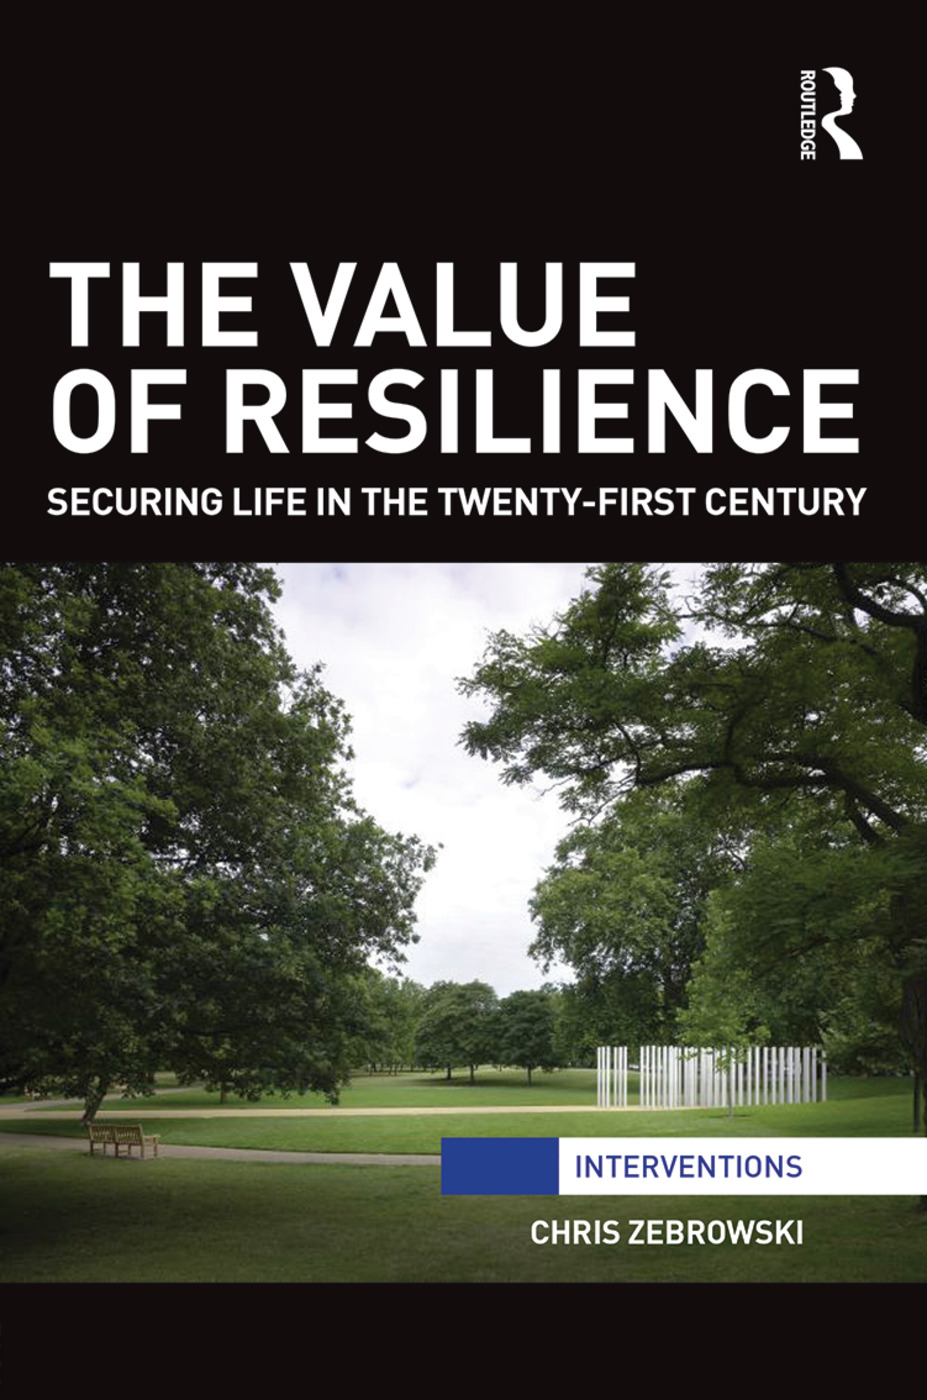 The Value of Resilience: Securing life in the twenty-first century